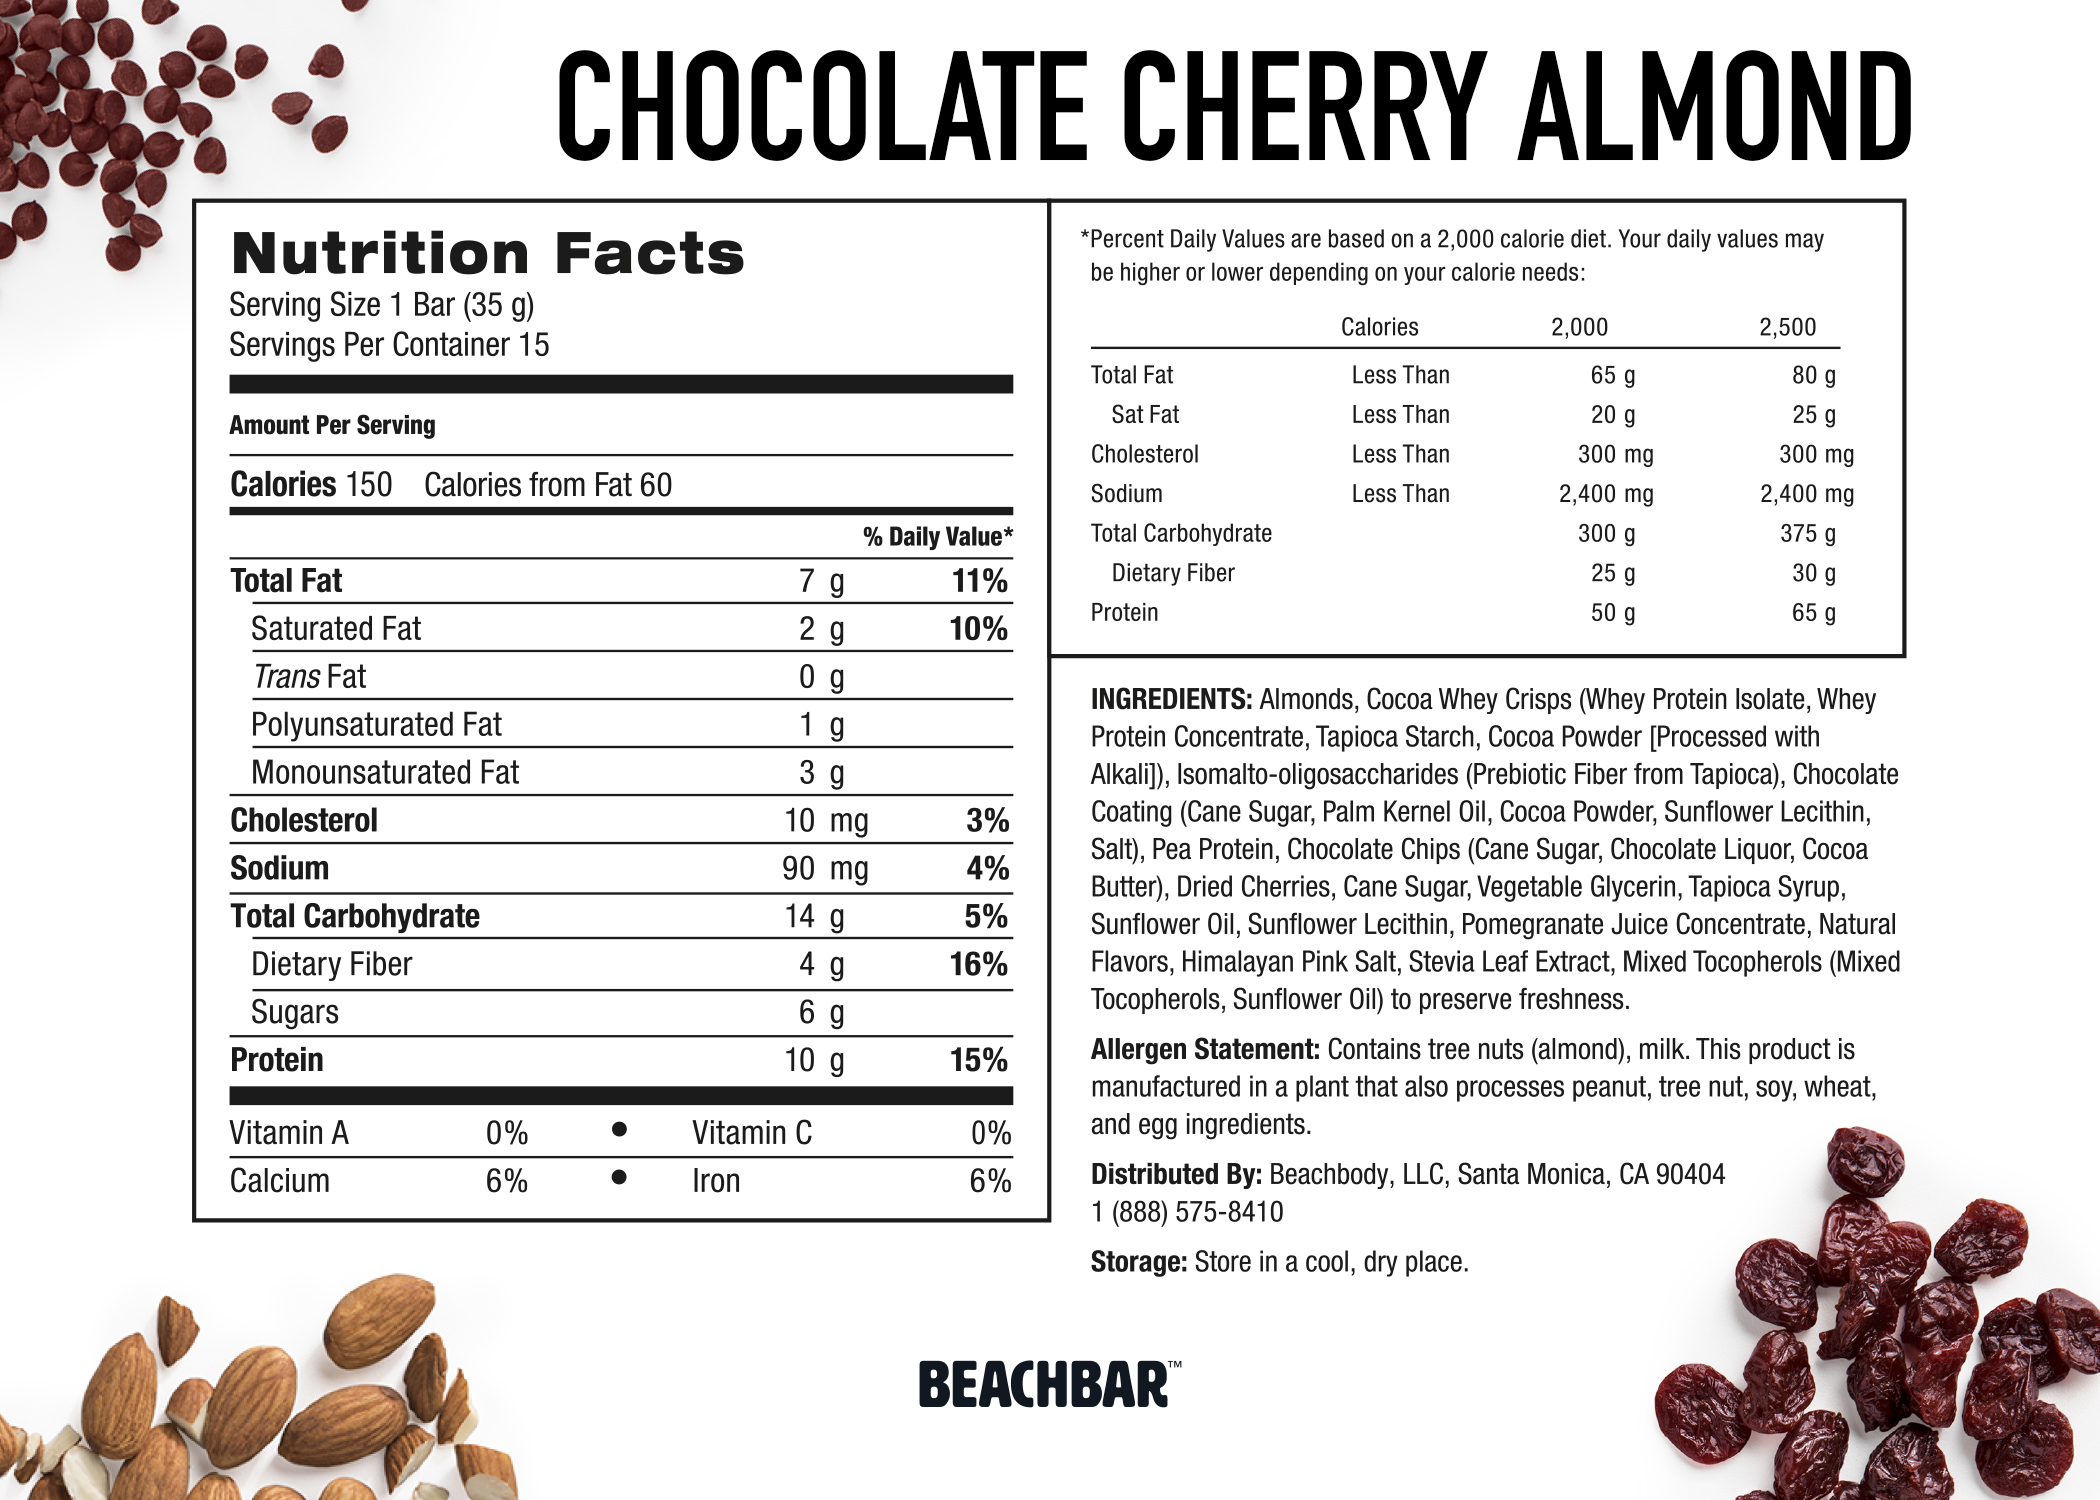 Beachbody BEACHBAR Chocolate Cherry Almond Nutriton Label